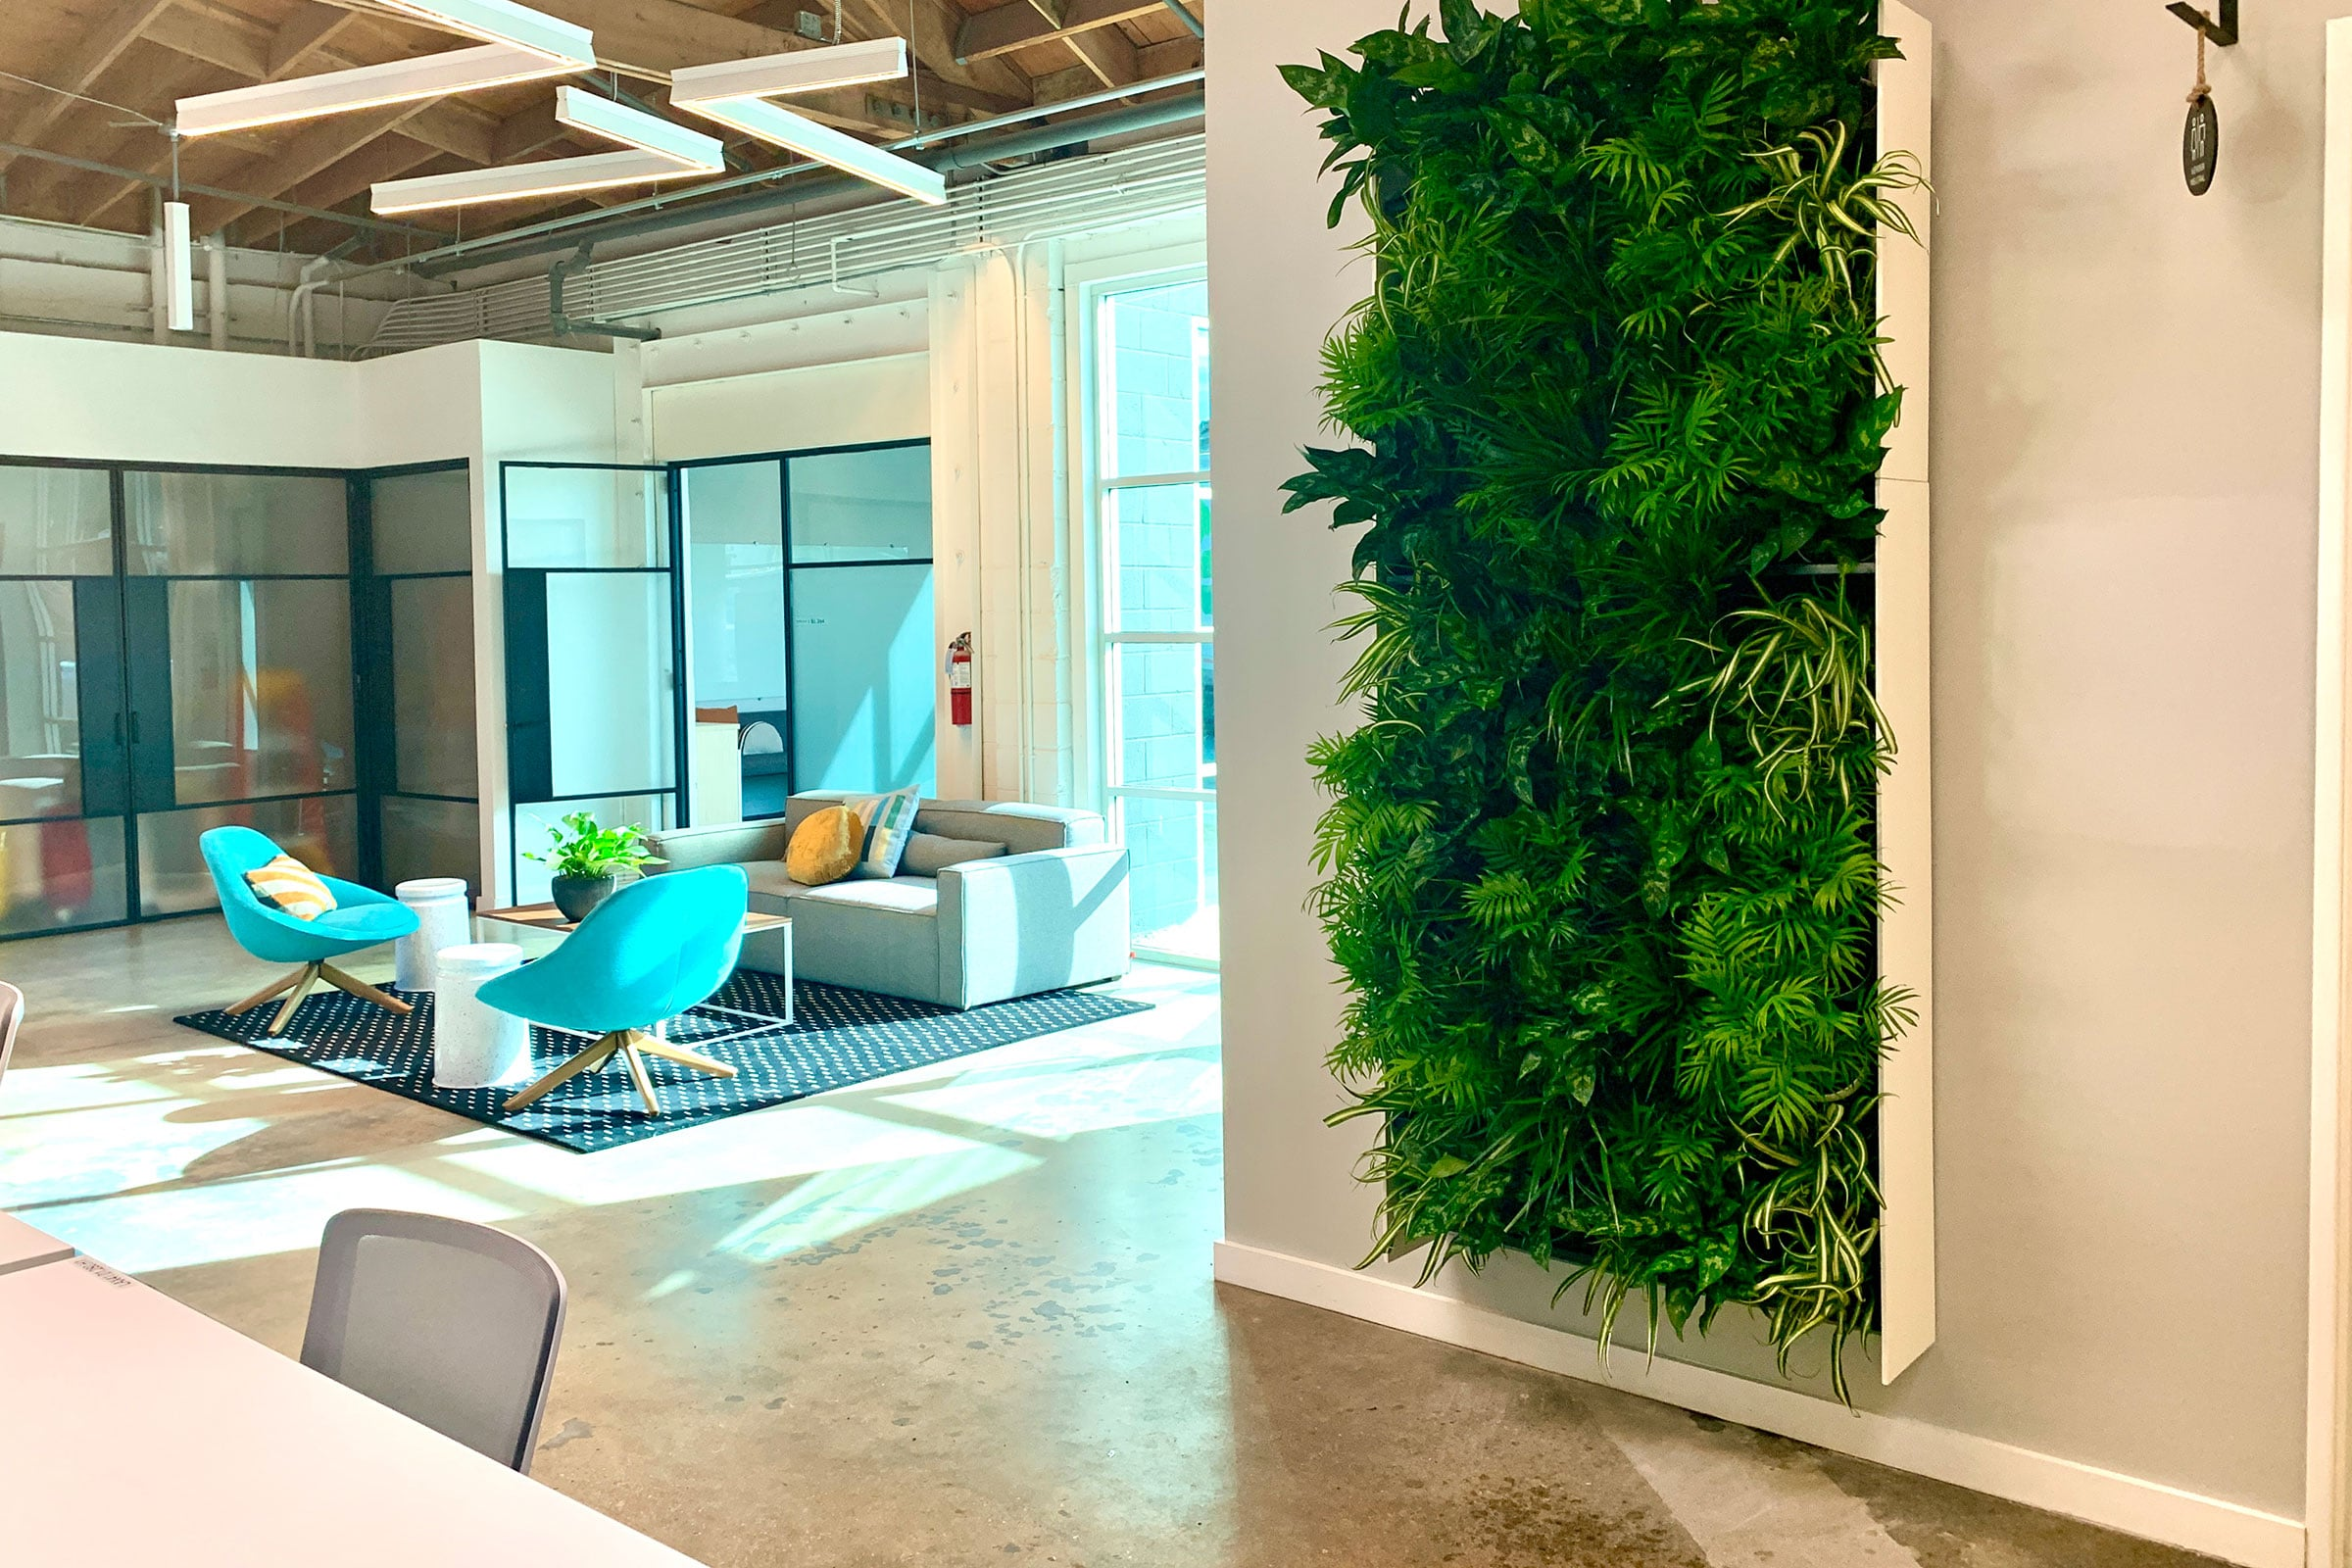 How Biophilic Design Makes for Better, Healthier Commercial Spaces